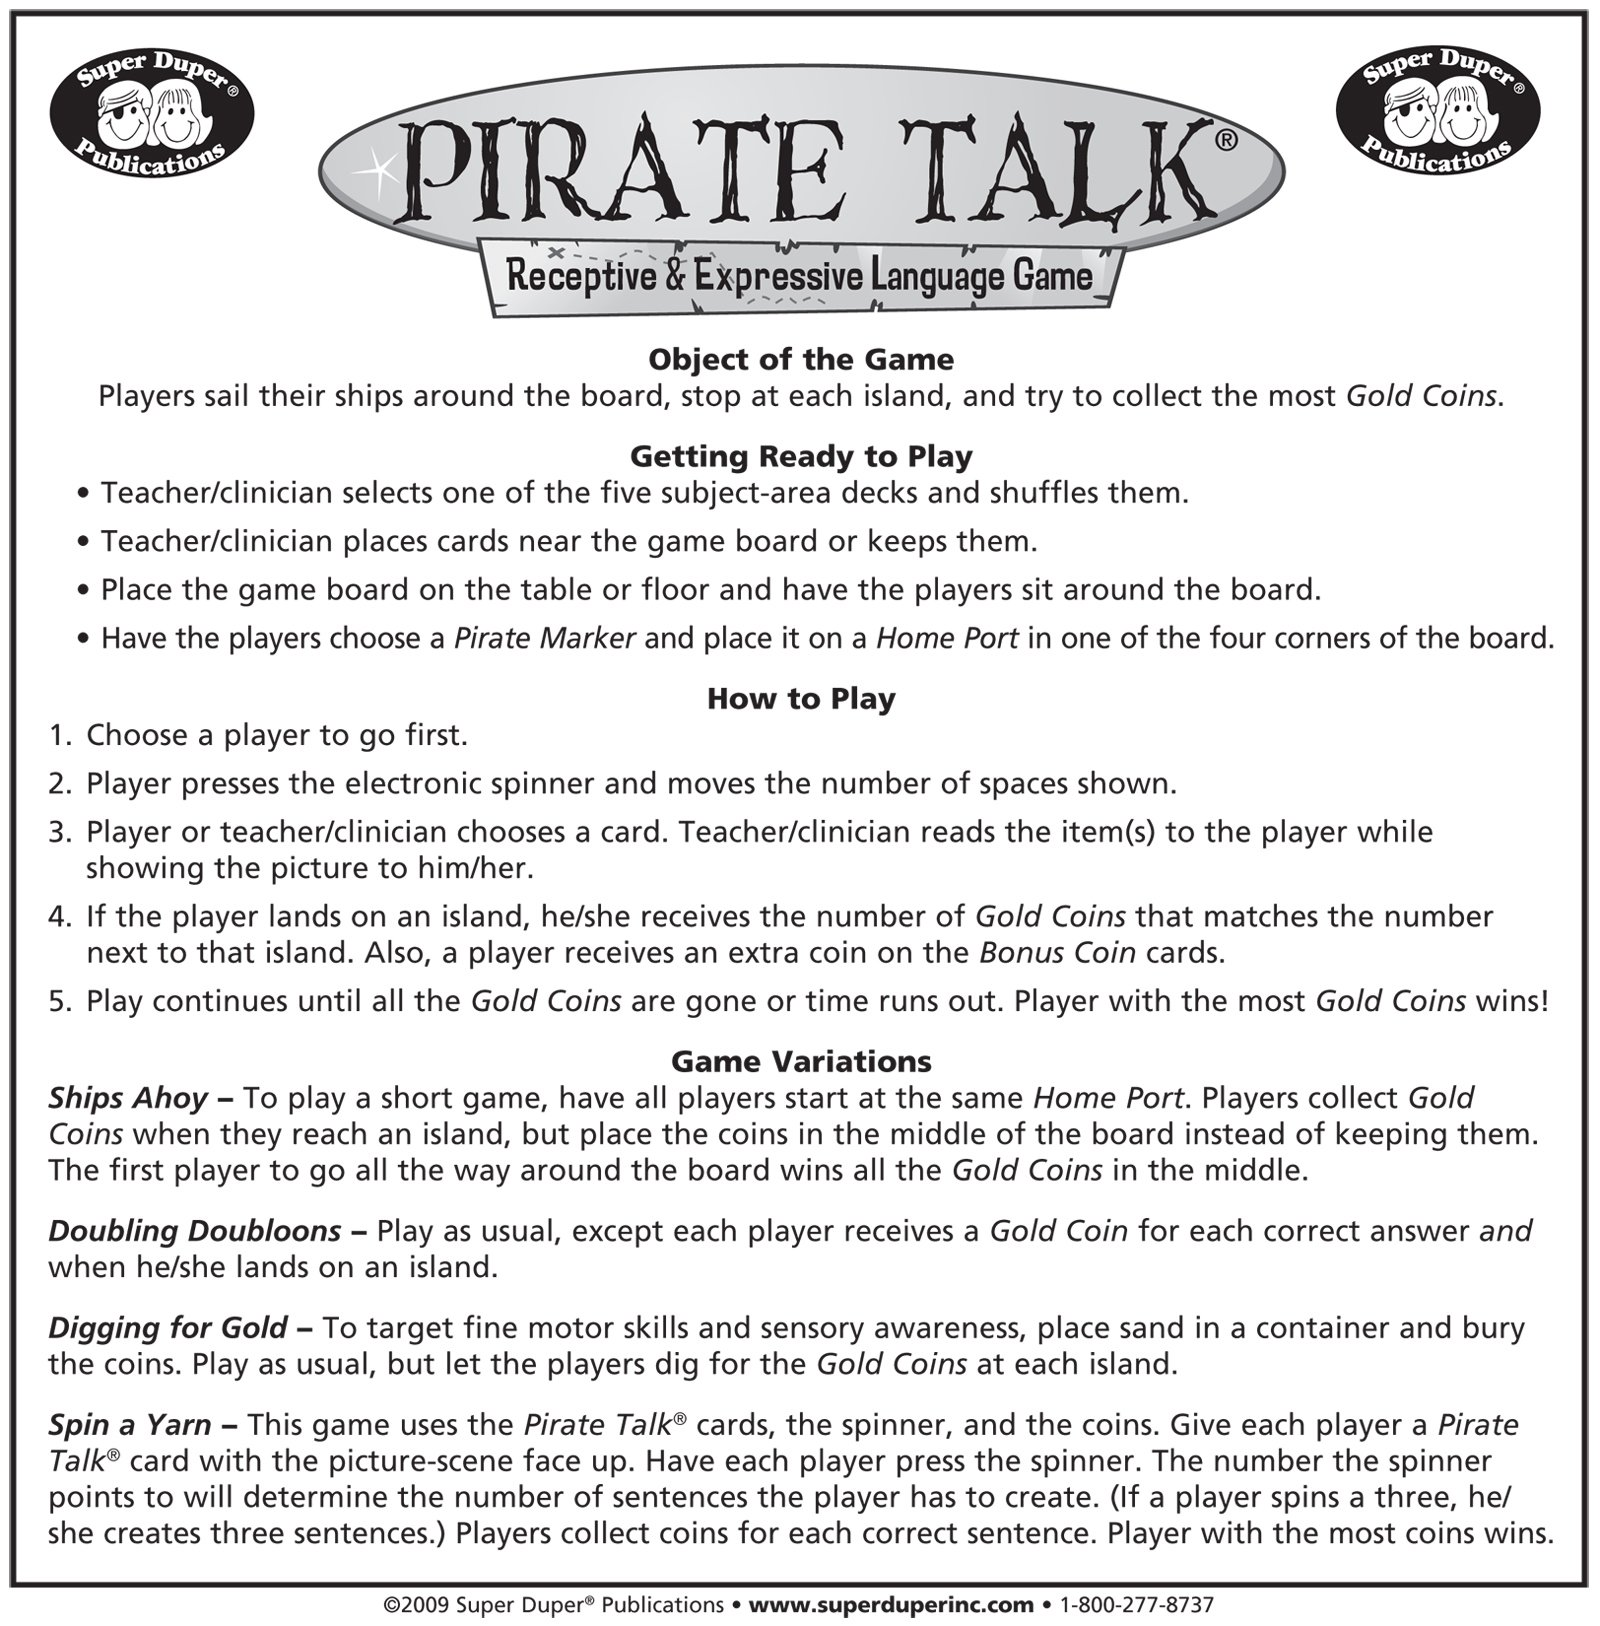 Super Duper Publications Pirate Talk Language, Communication, and Social Skills Board Educational Learning Resource for Children by Super Duper Publications (Image #3)